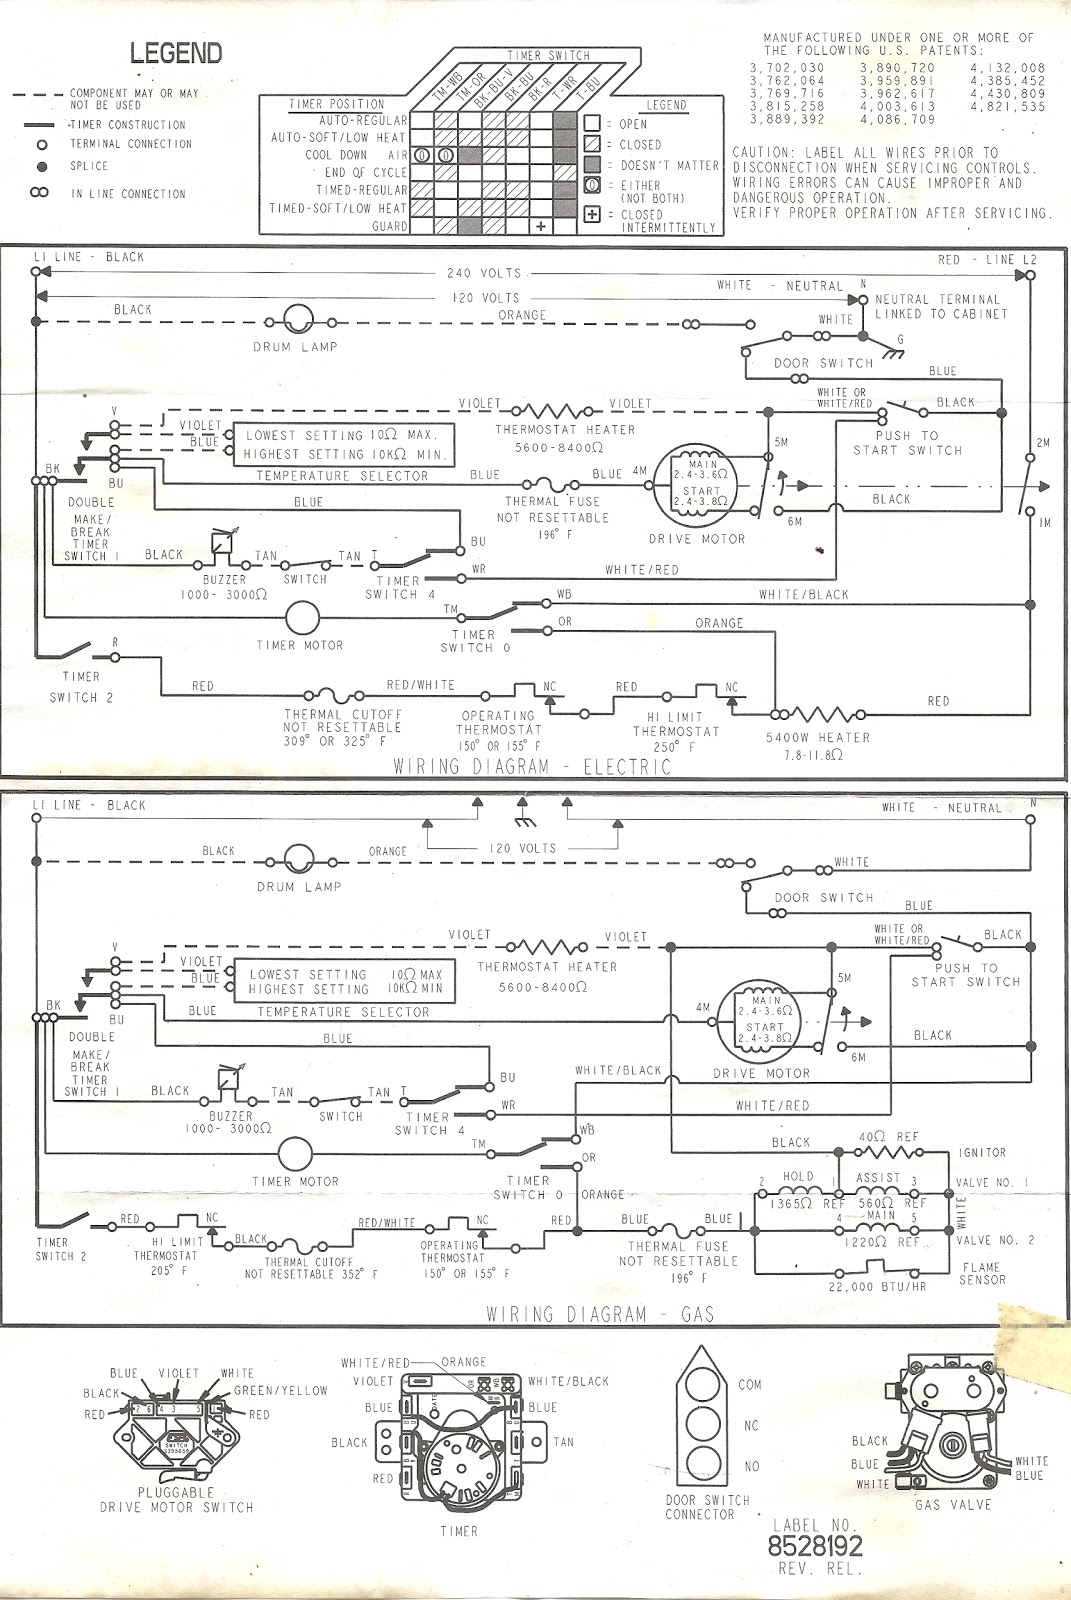 Appliance Talk: Wiring Diagram for a Kenmore Dryer - Full Wiring Schematic | Whirlpool Wiring Schematic |  | Refrigerator in the Garage